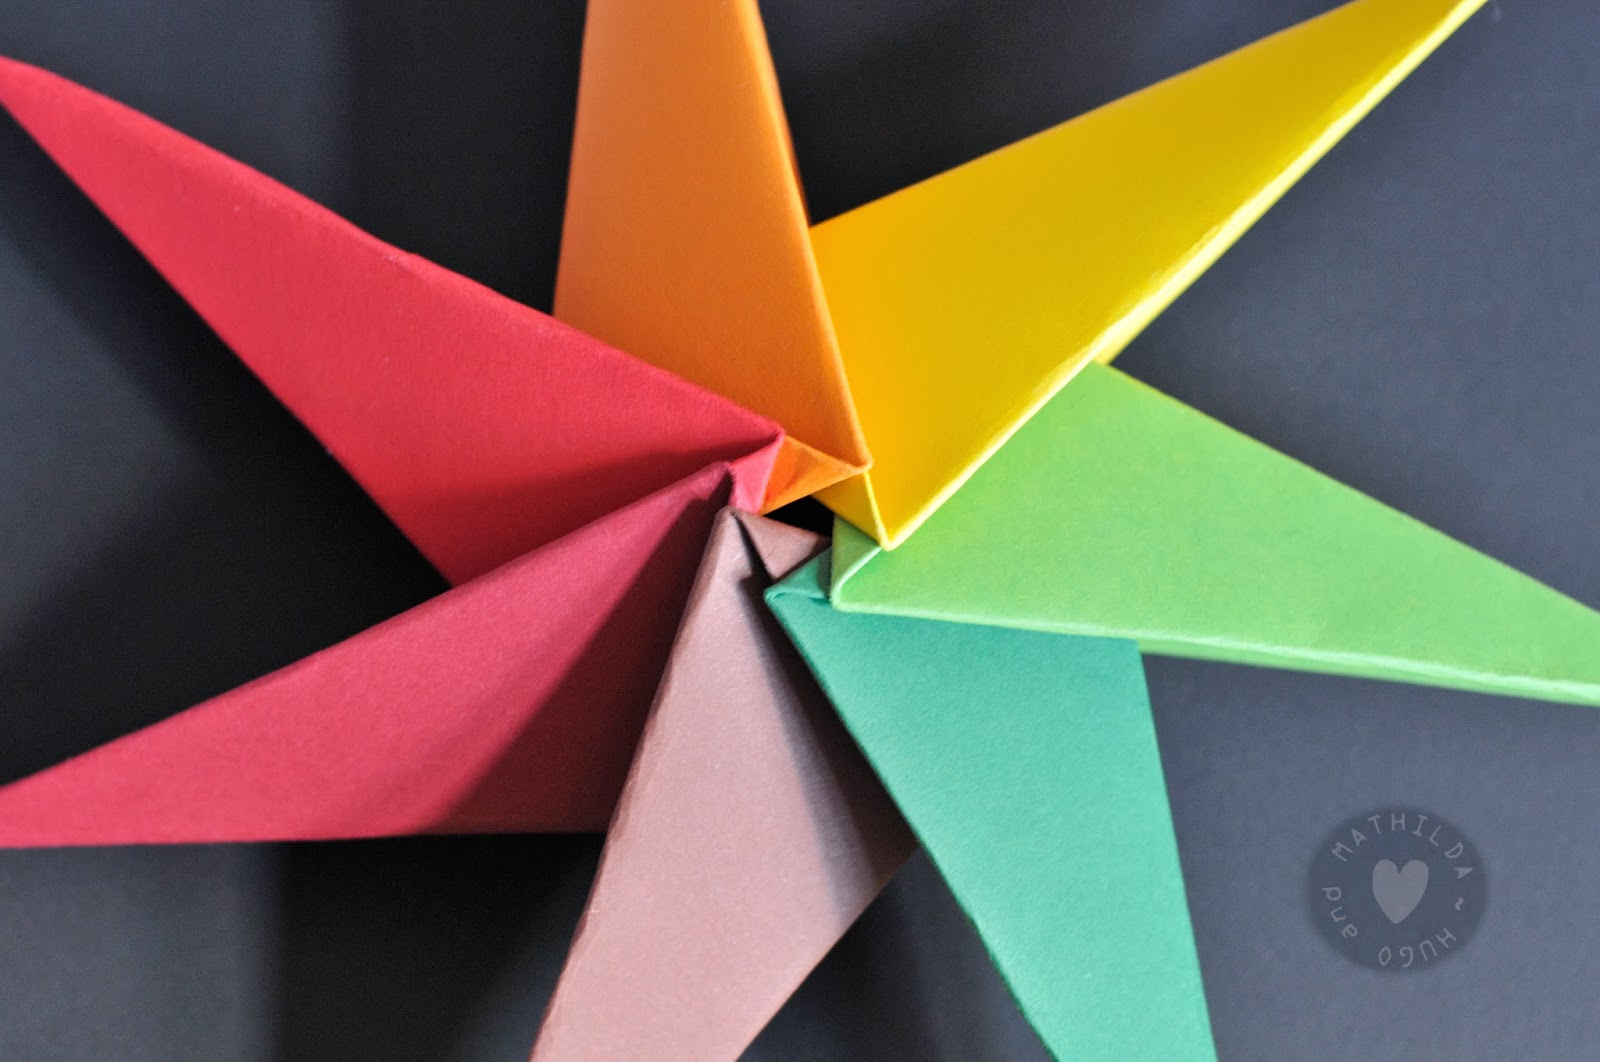 The Most Beautiful Origami Star